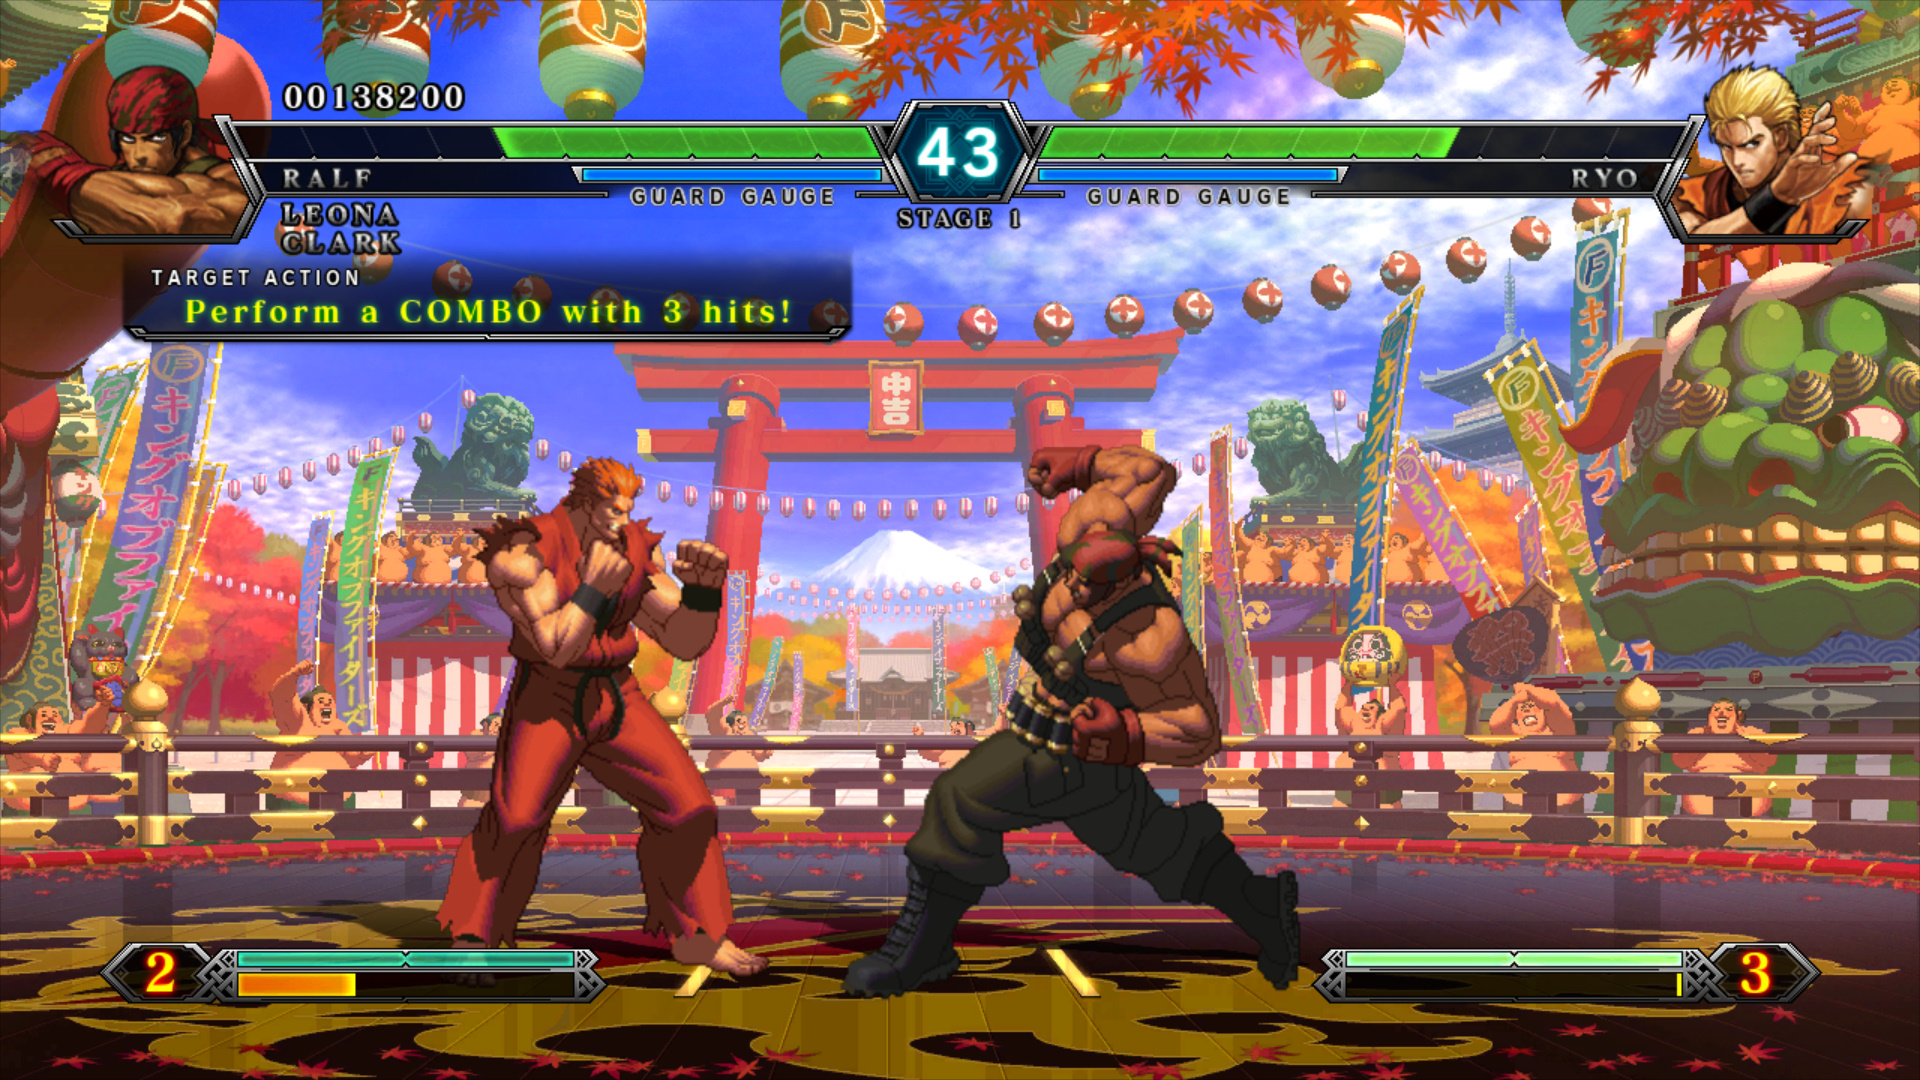 The King of Fighters XIII, Steam Edition.    This game was not played with a arcade stick or controller. While I used to frequent arcades back in the day, I fell back to the keyboard when the same titles came to the PC. The presence of multi key macros helps some for keyboard play, but nothing beats having a decent amount of input rollover.